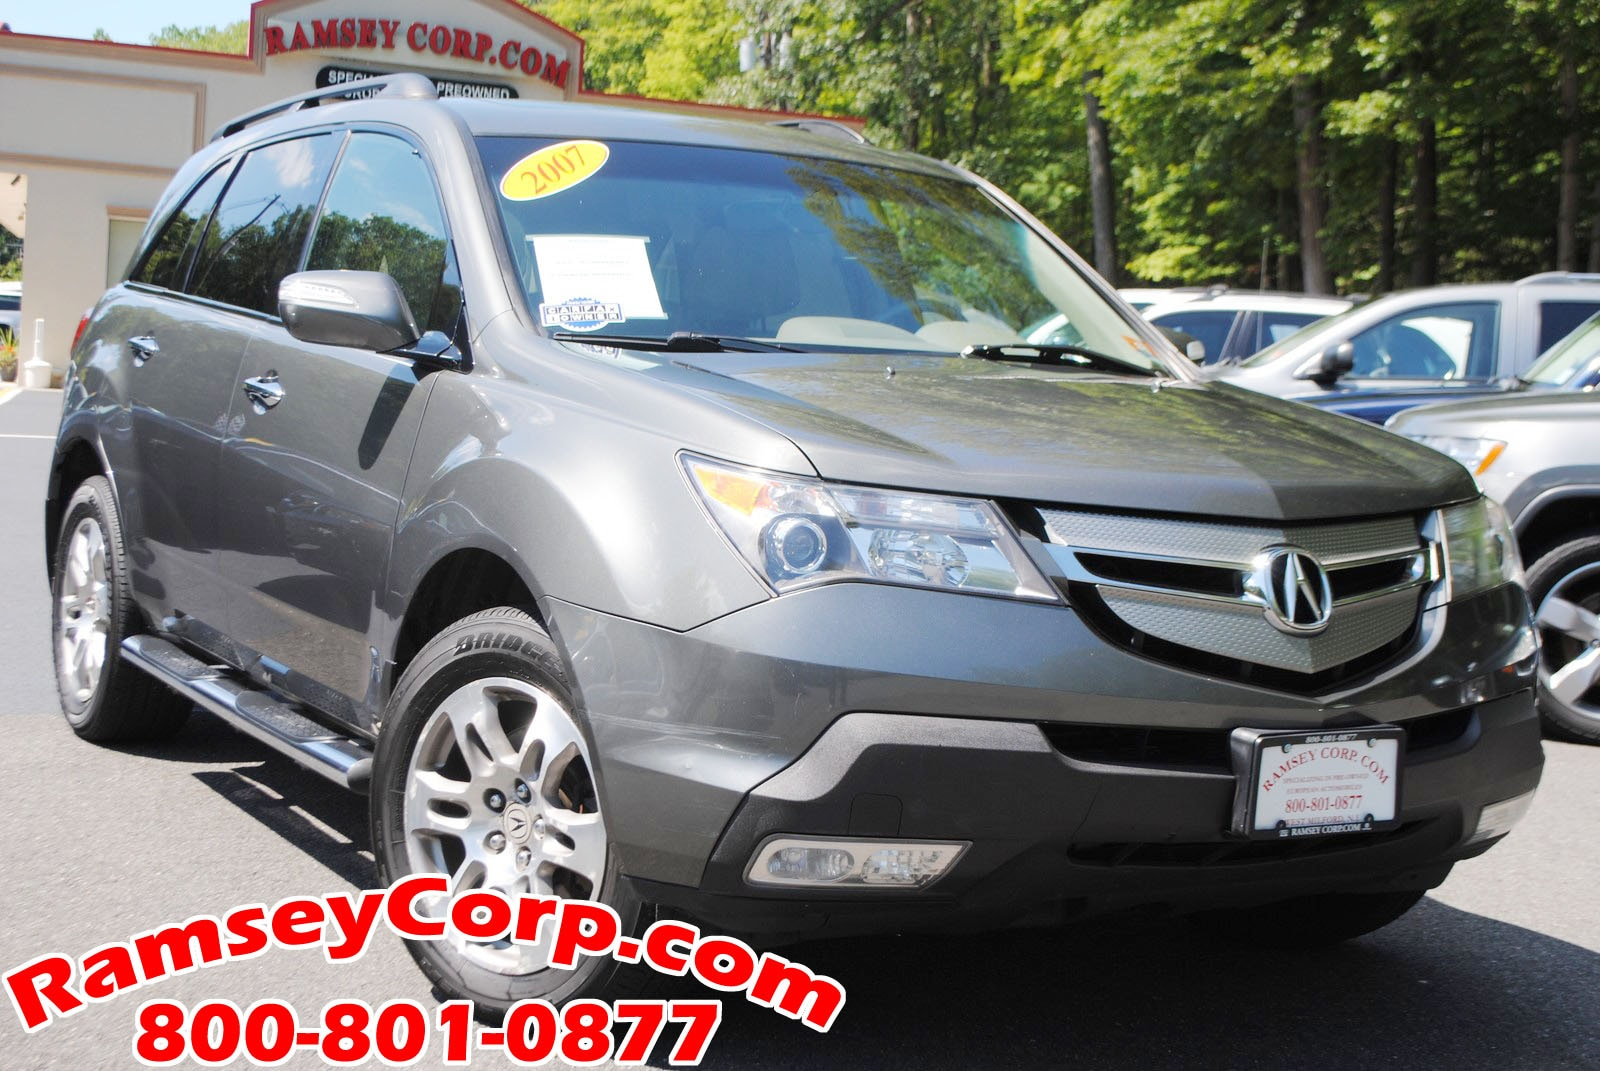 used 2007 acura mdx for sale west milford nj rh ramseycorp com 2010 Acura MDX 2006 Acura MDX